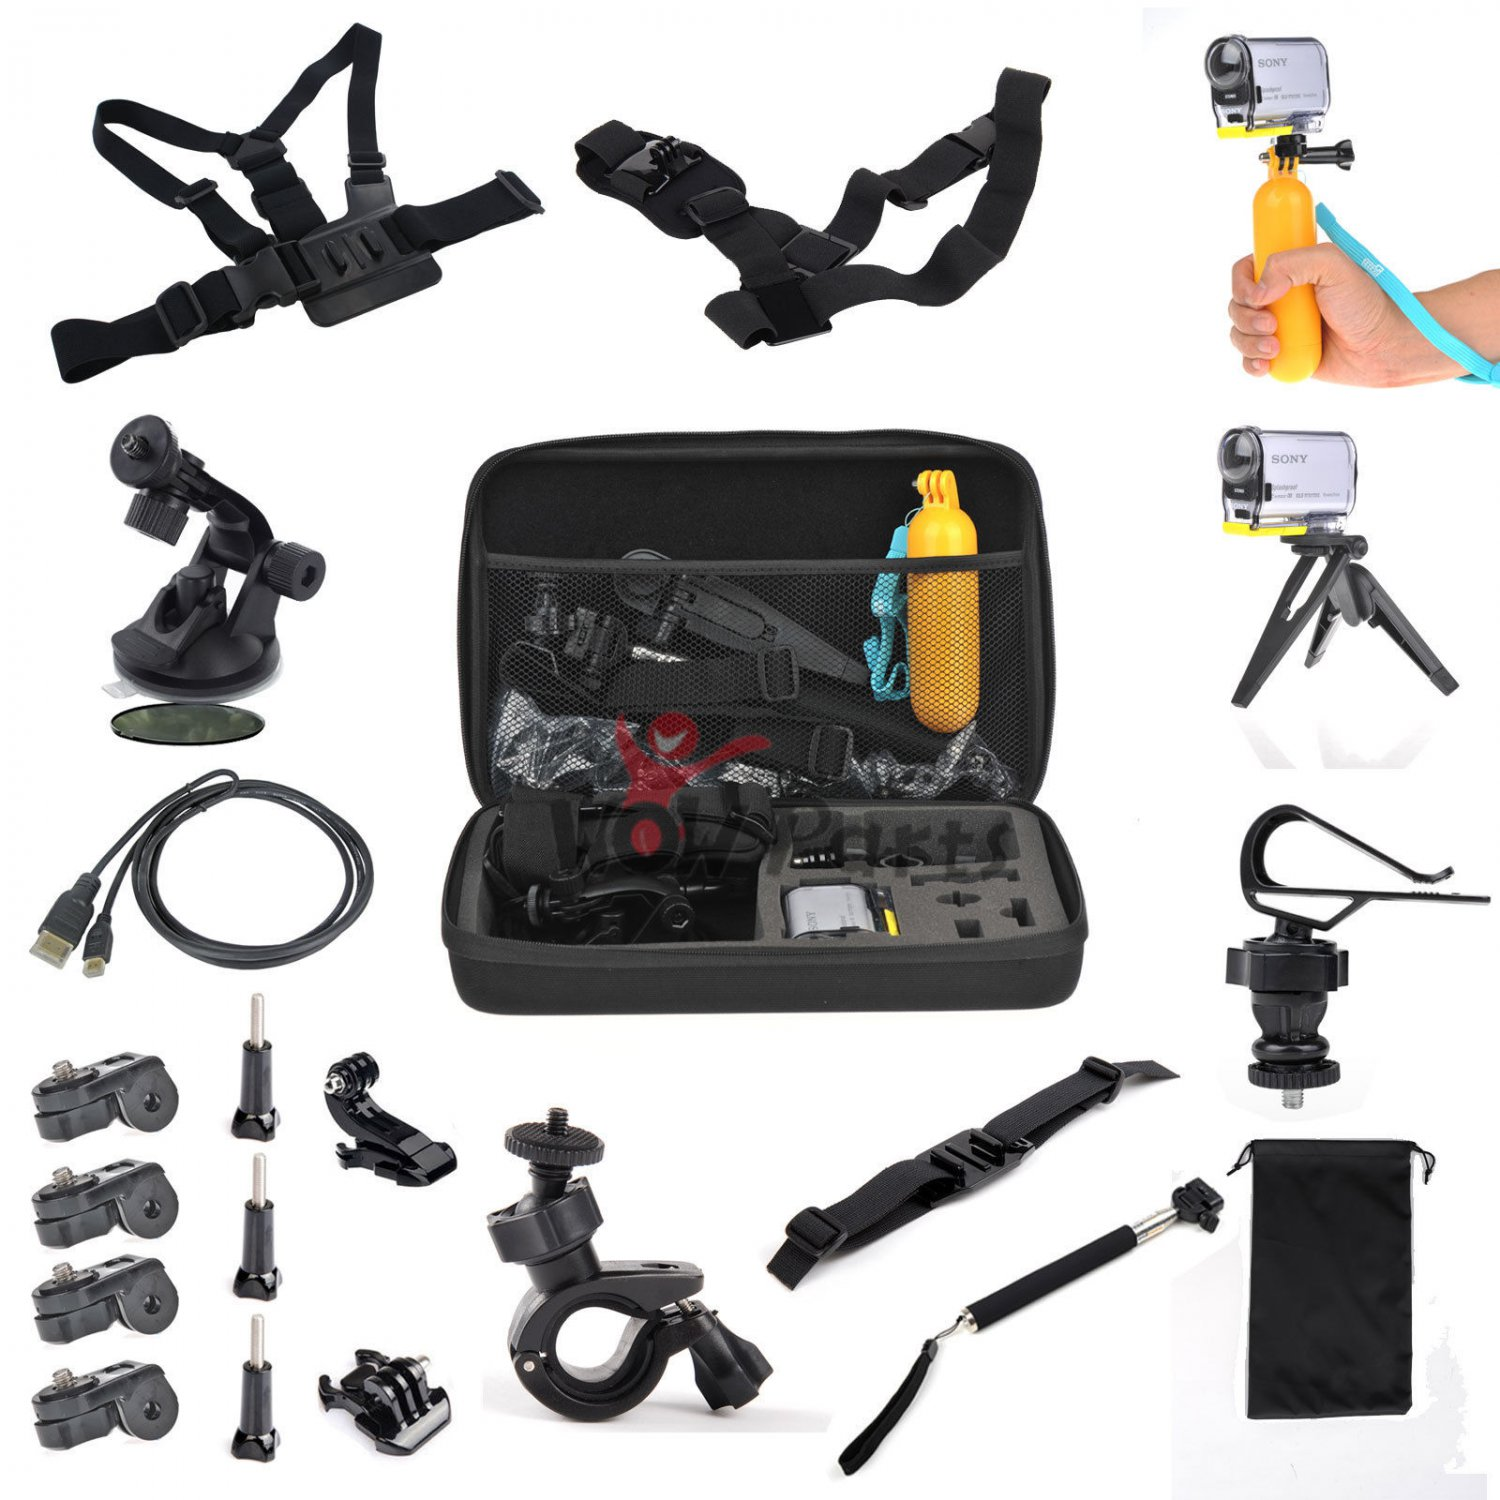 22 in1 Travel Storage Bag Holder Accessories Set for Sony Action Camera HDR